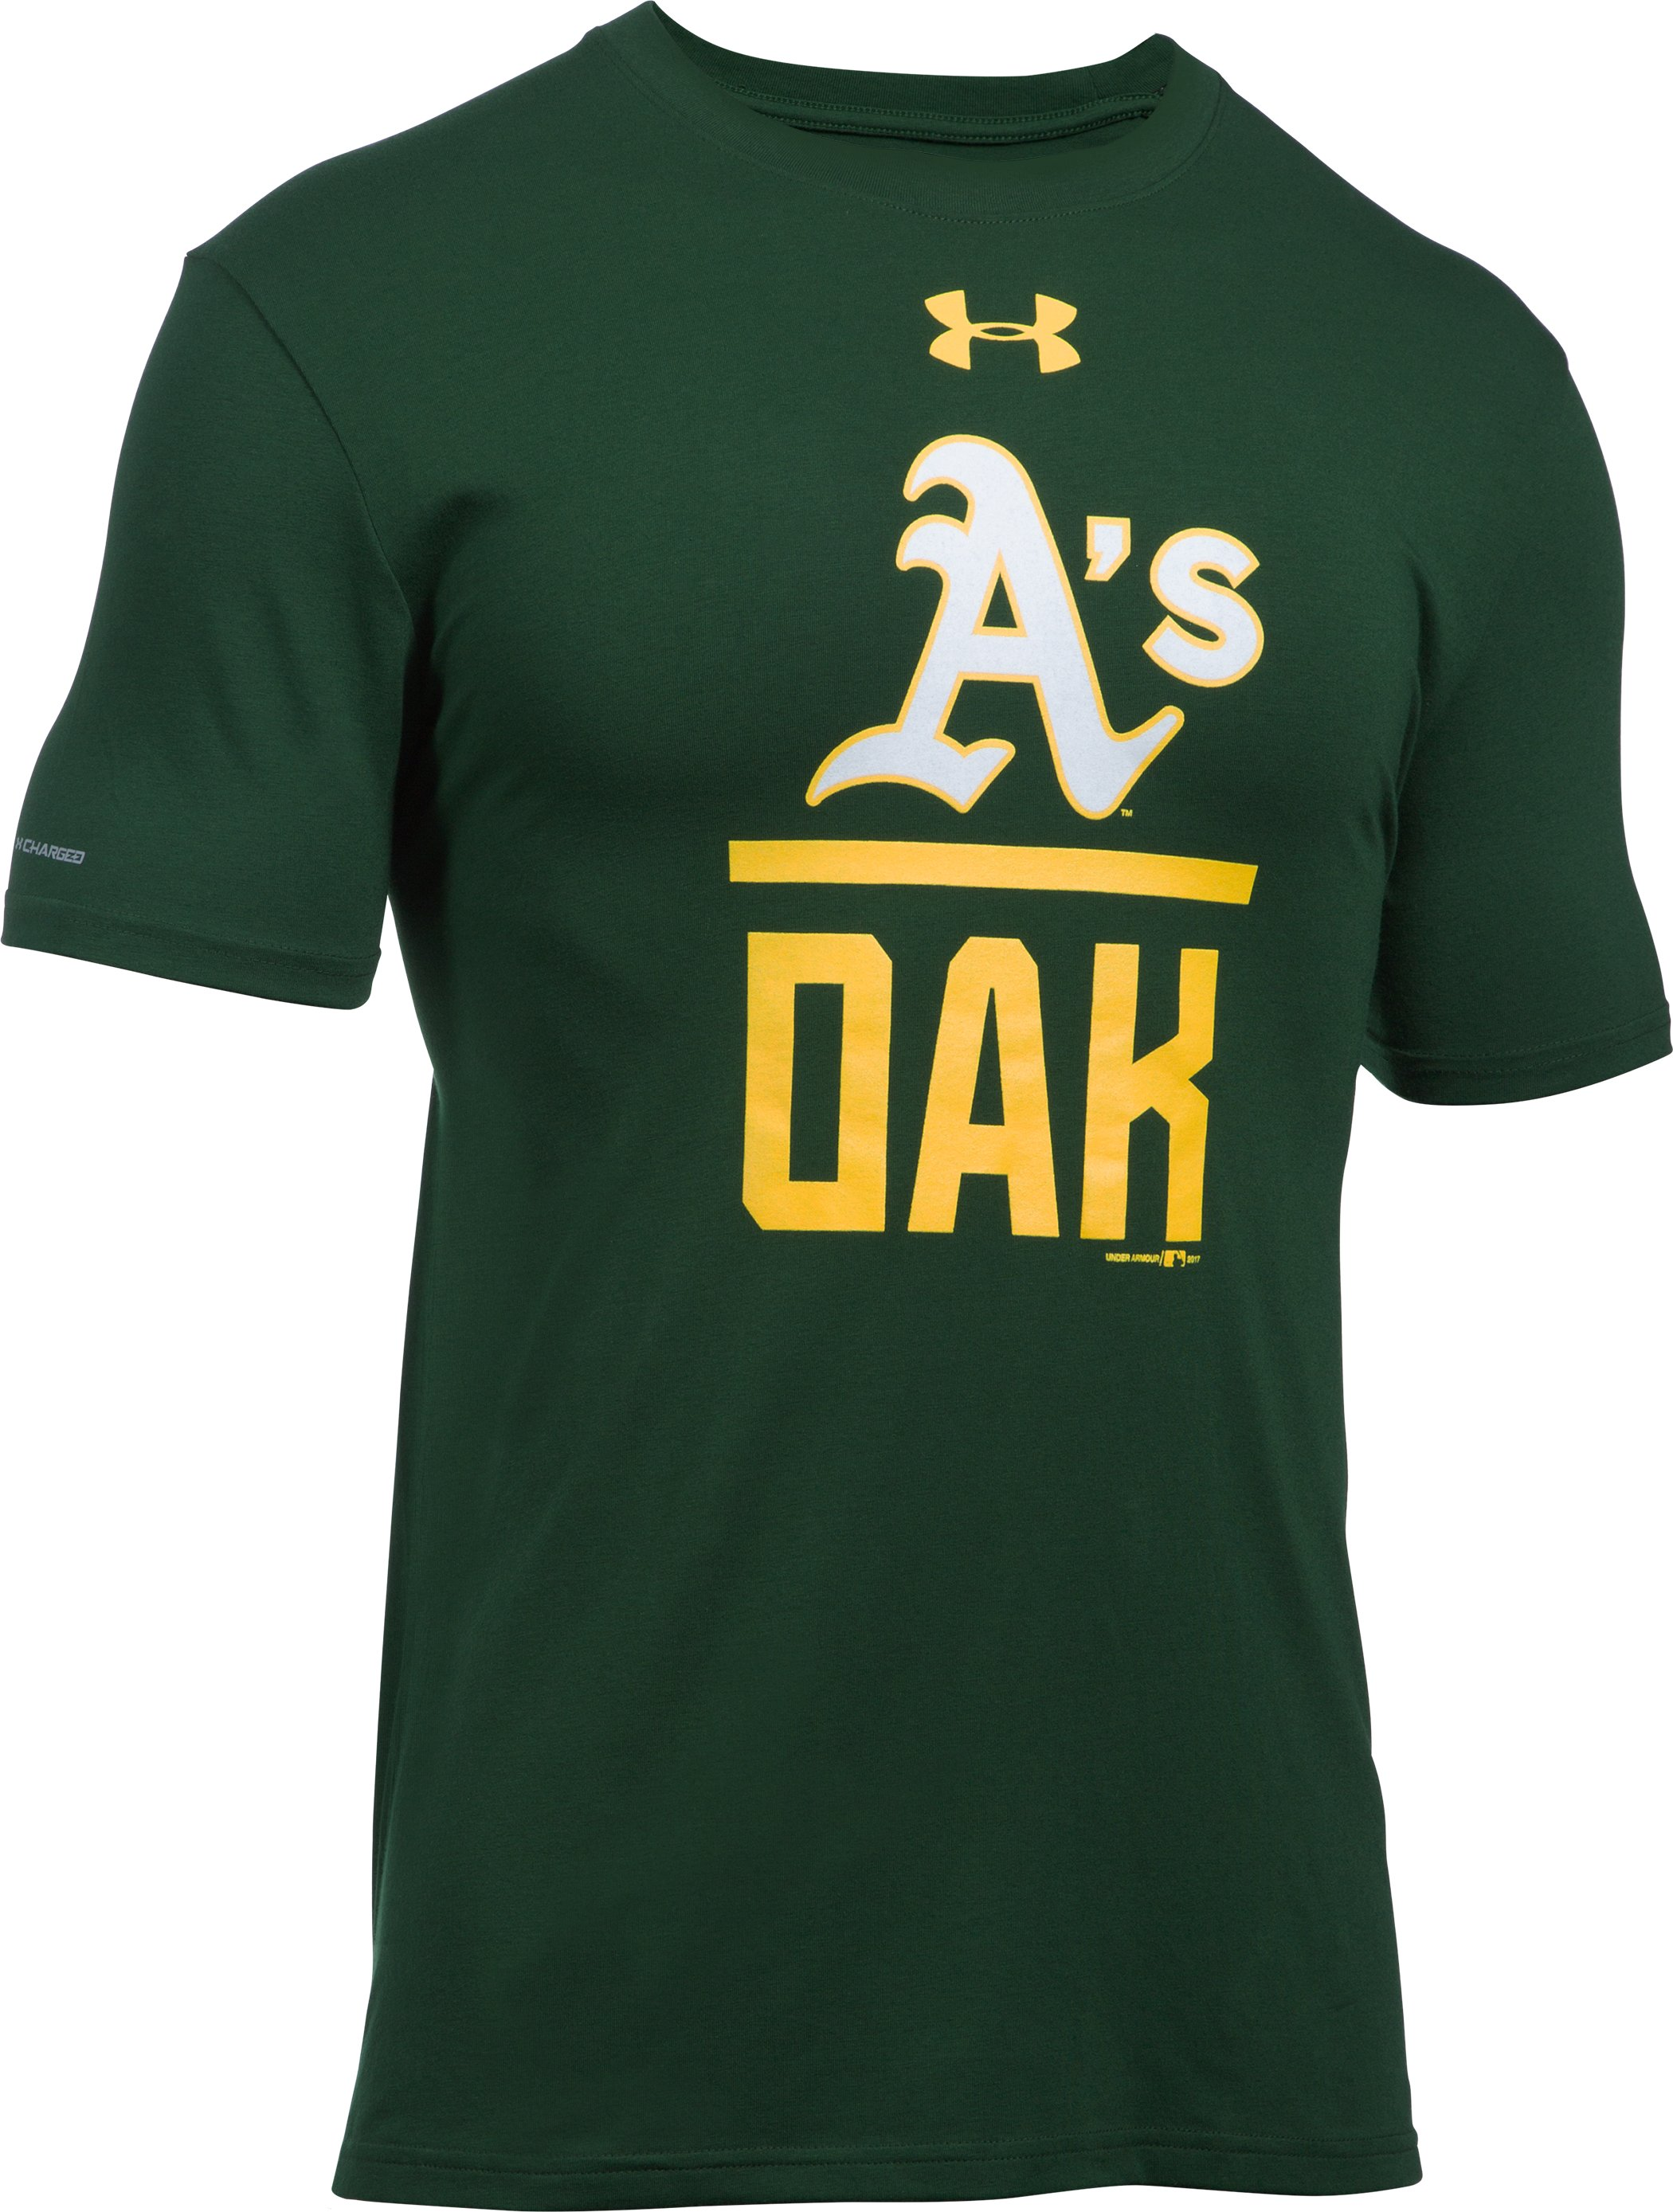 Men's Oakland A's Lockup T-Shirt, Forest Green, undefined